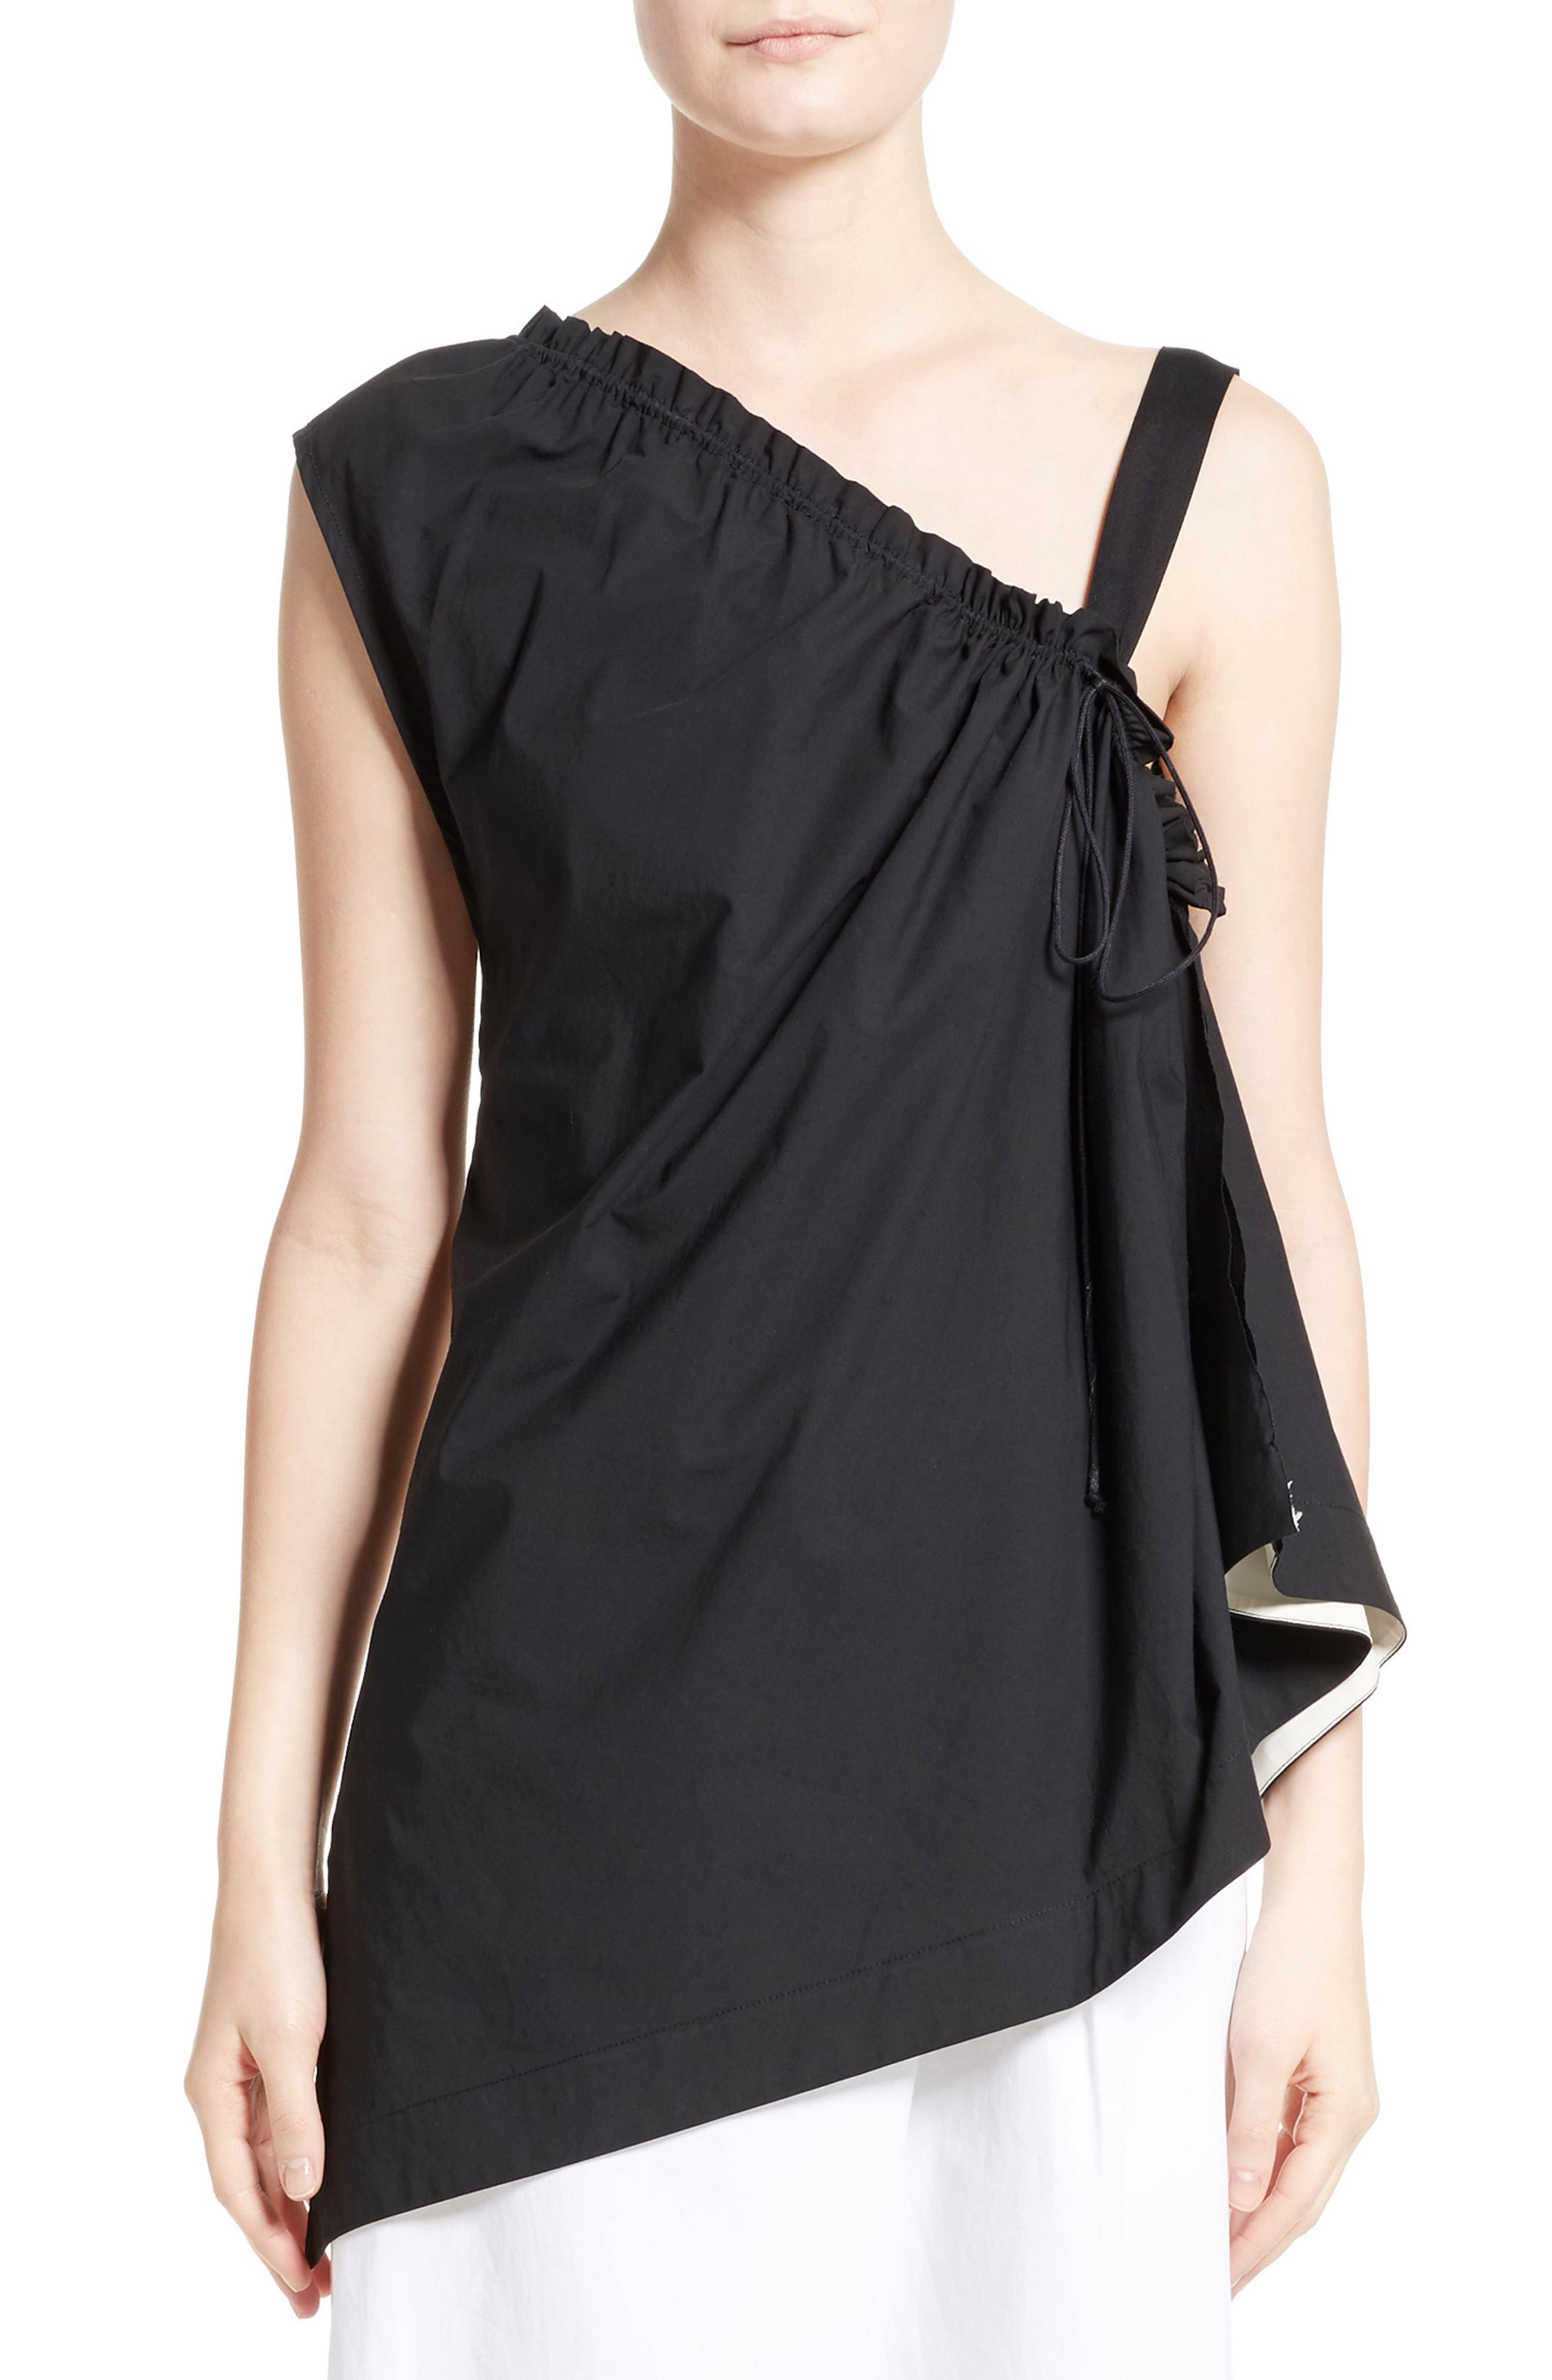 Main Image - Colovos Ruched Single Strap Top